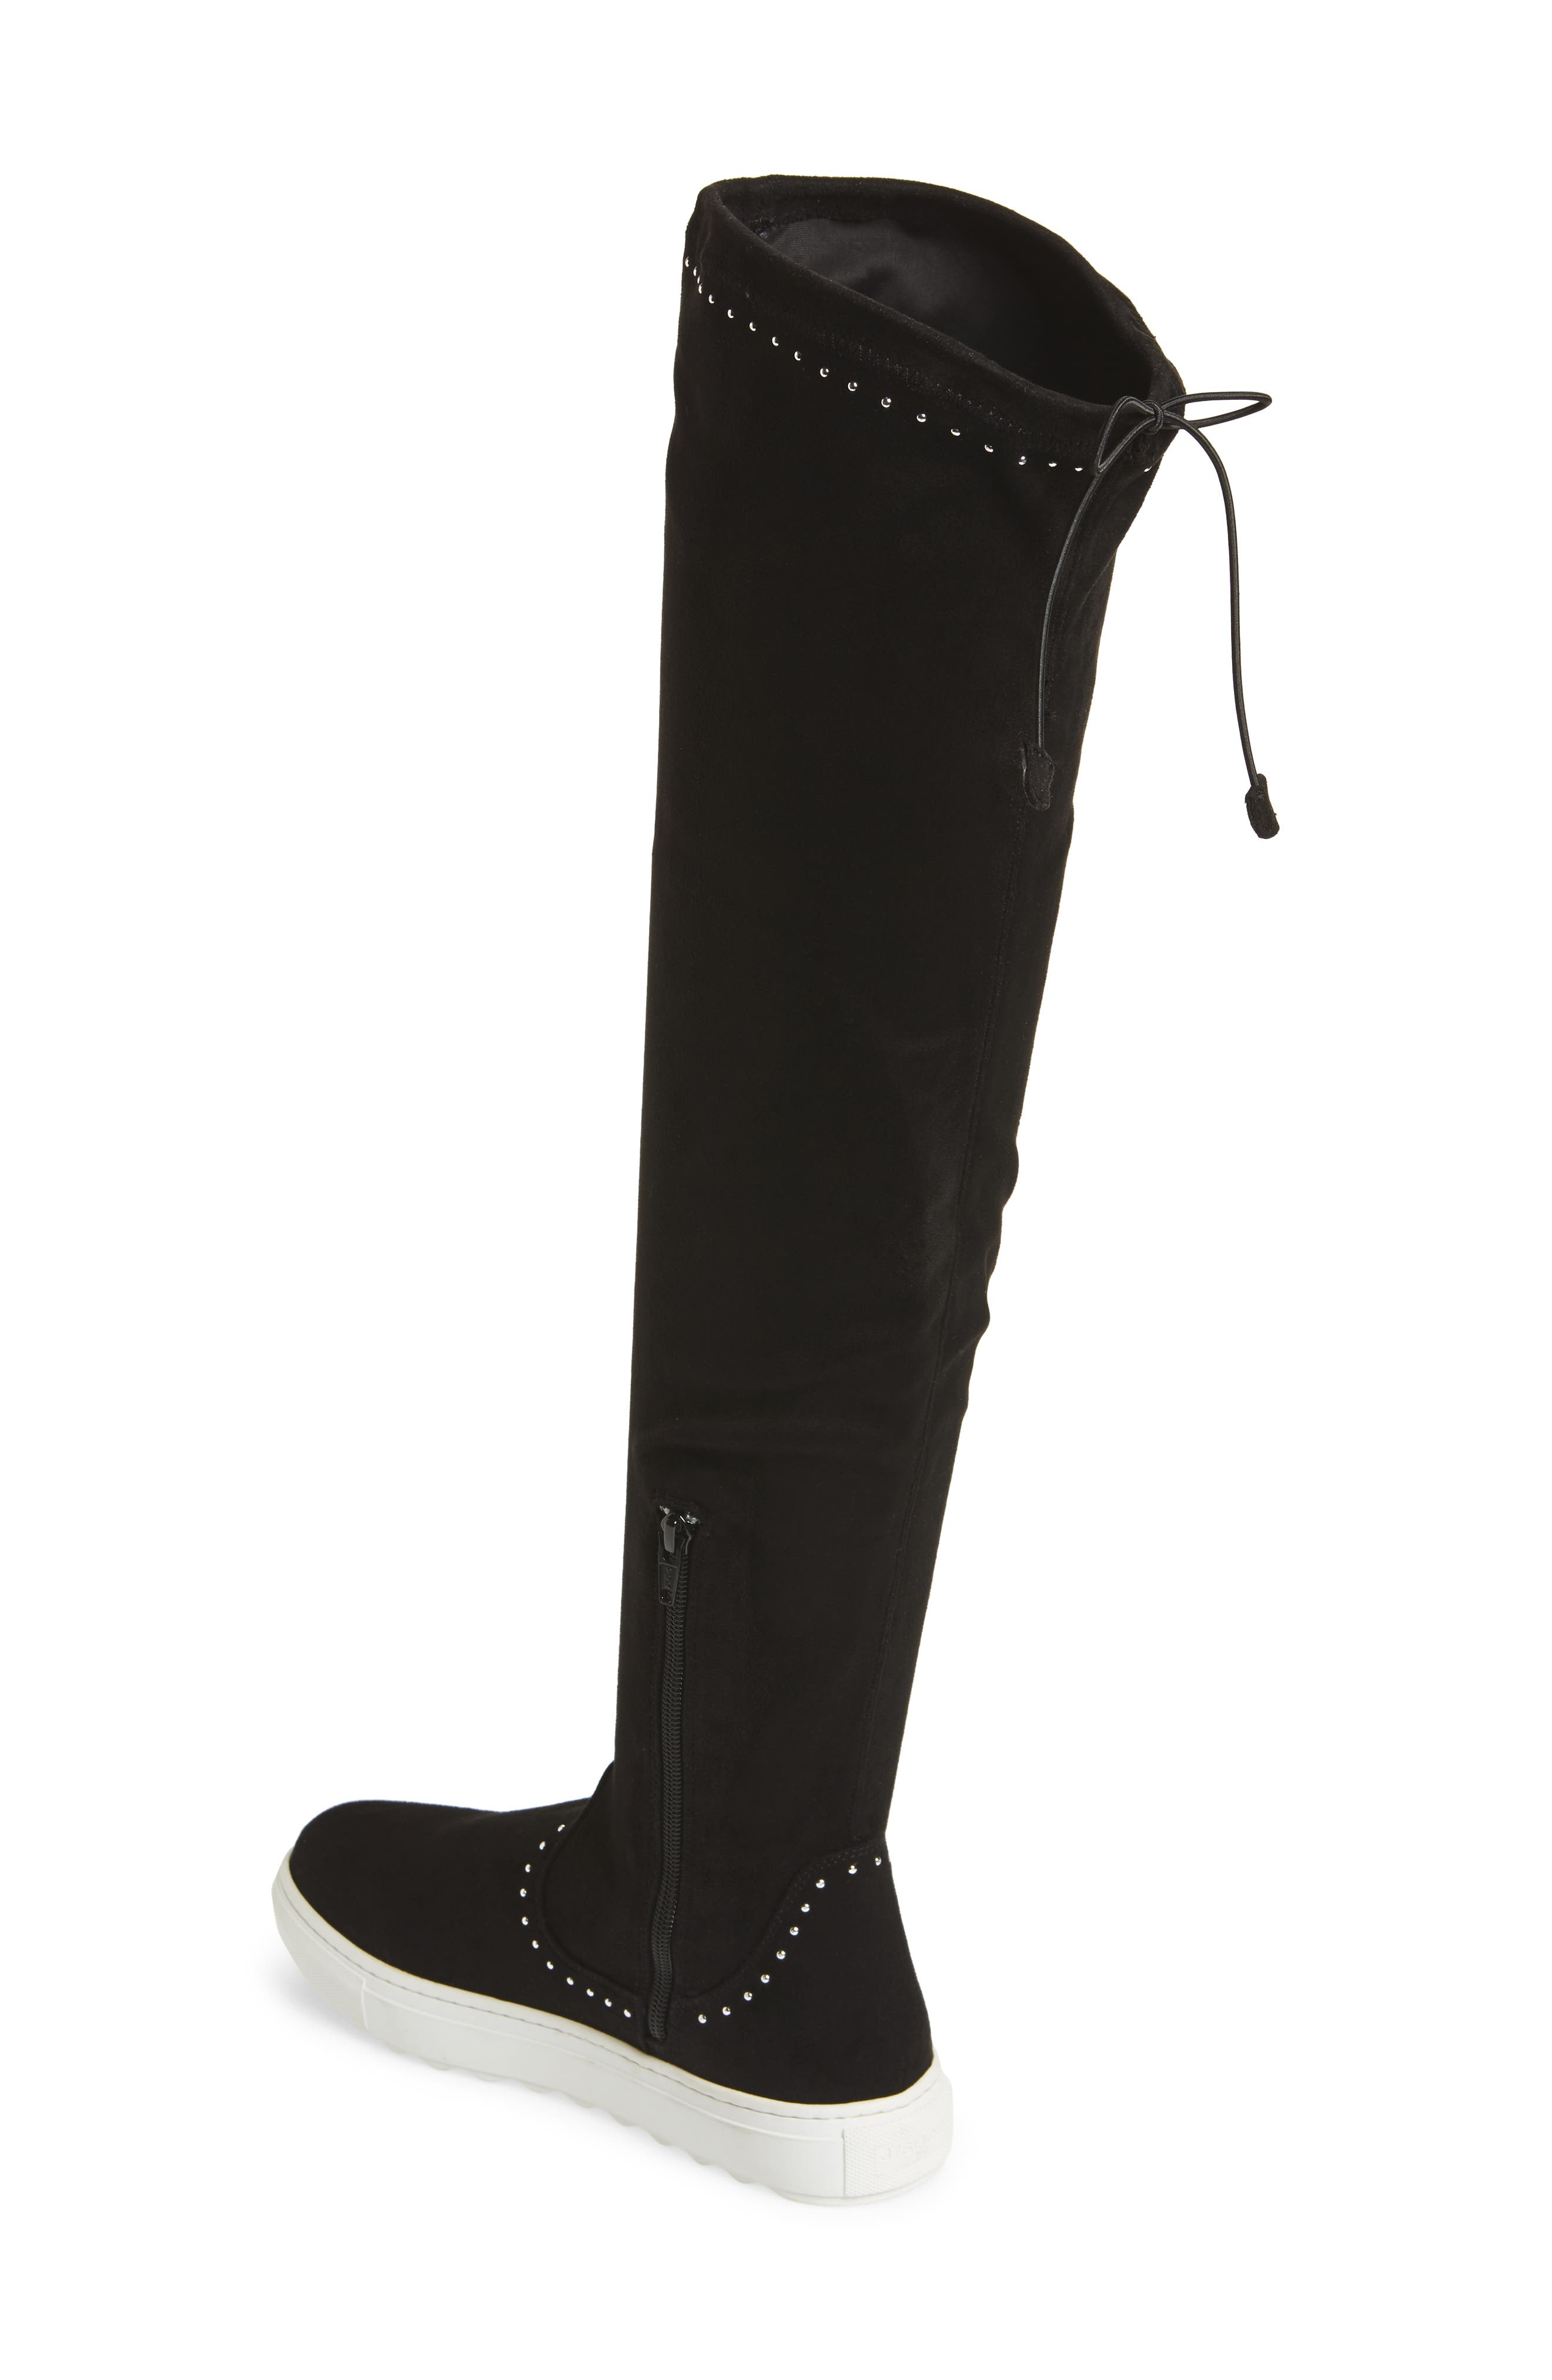 Plentee Over the Knee Boot,                             Alternate thumbnail 2, color,                             Black Stretch Suede